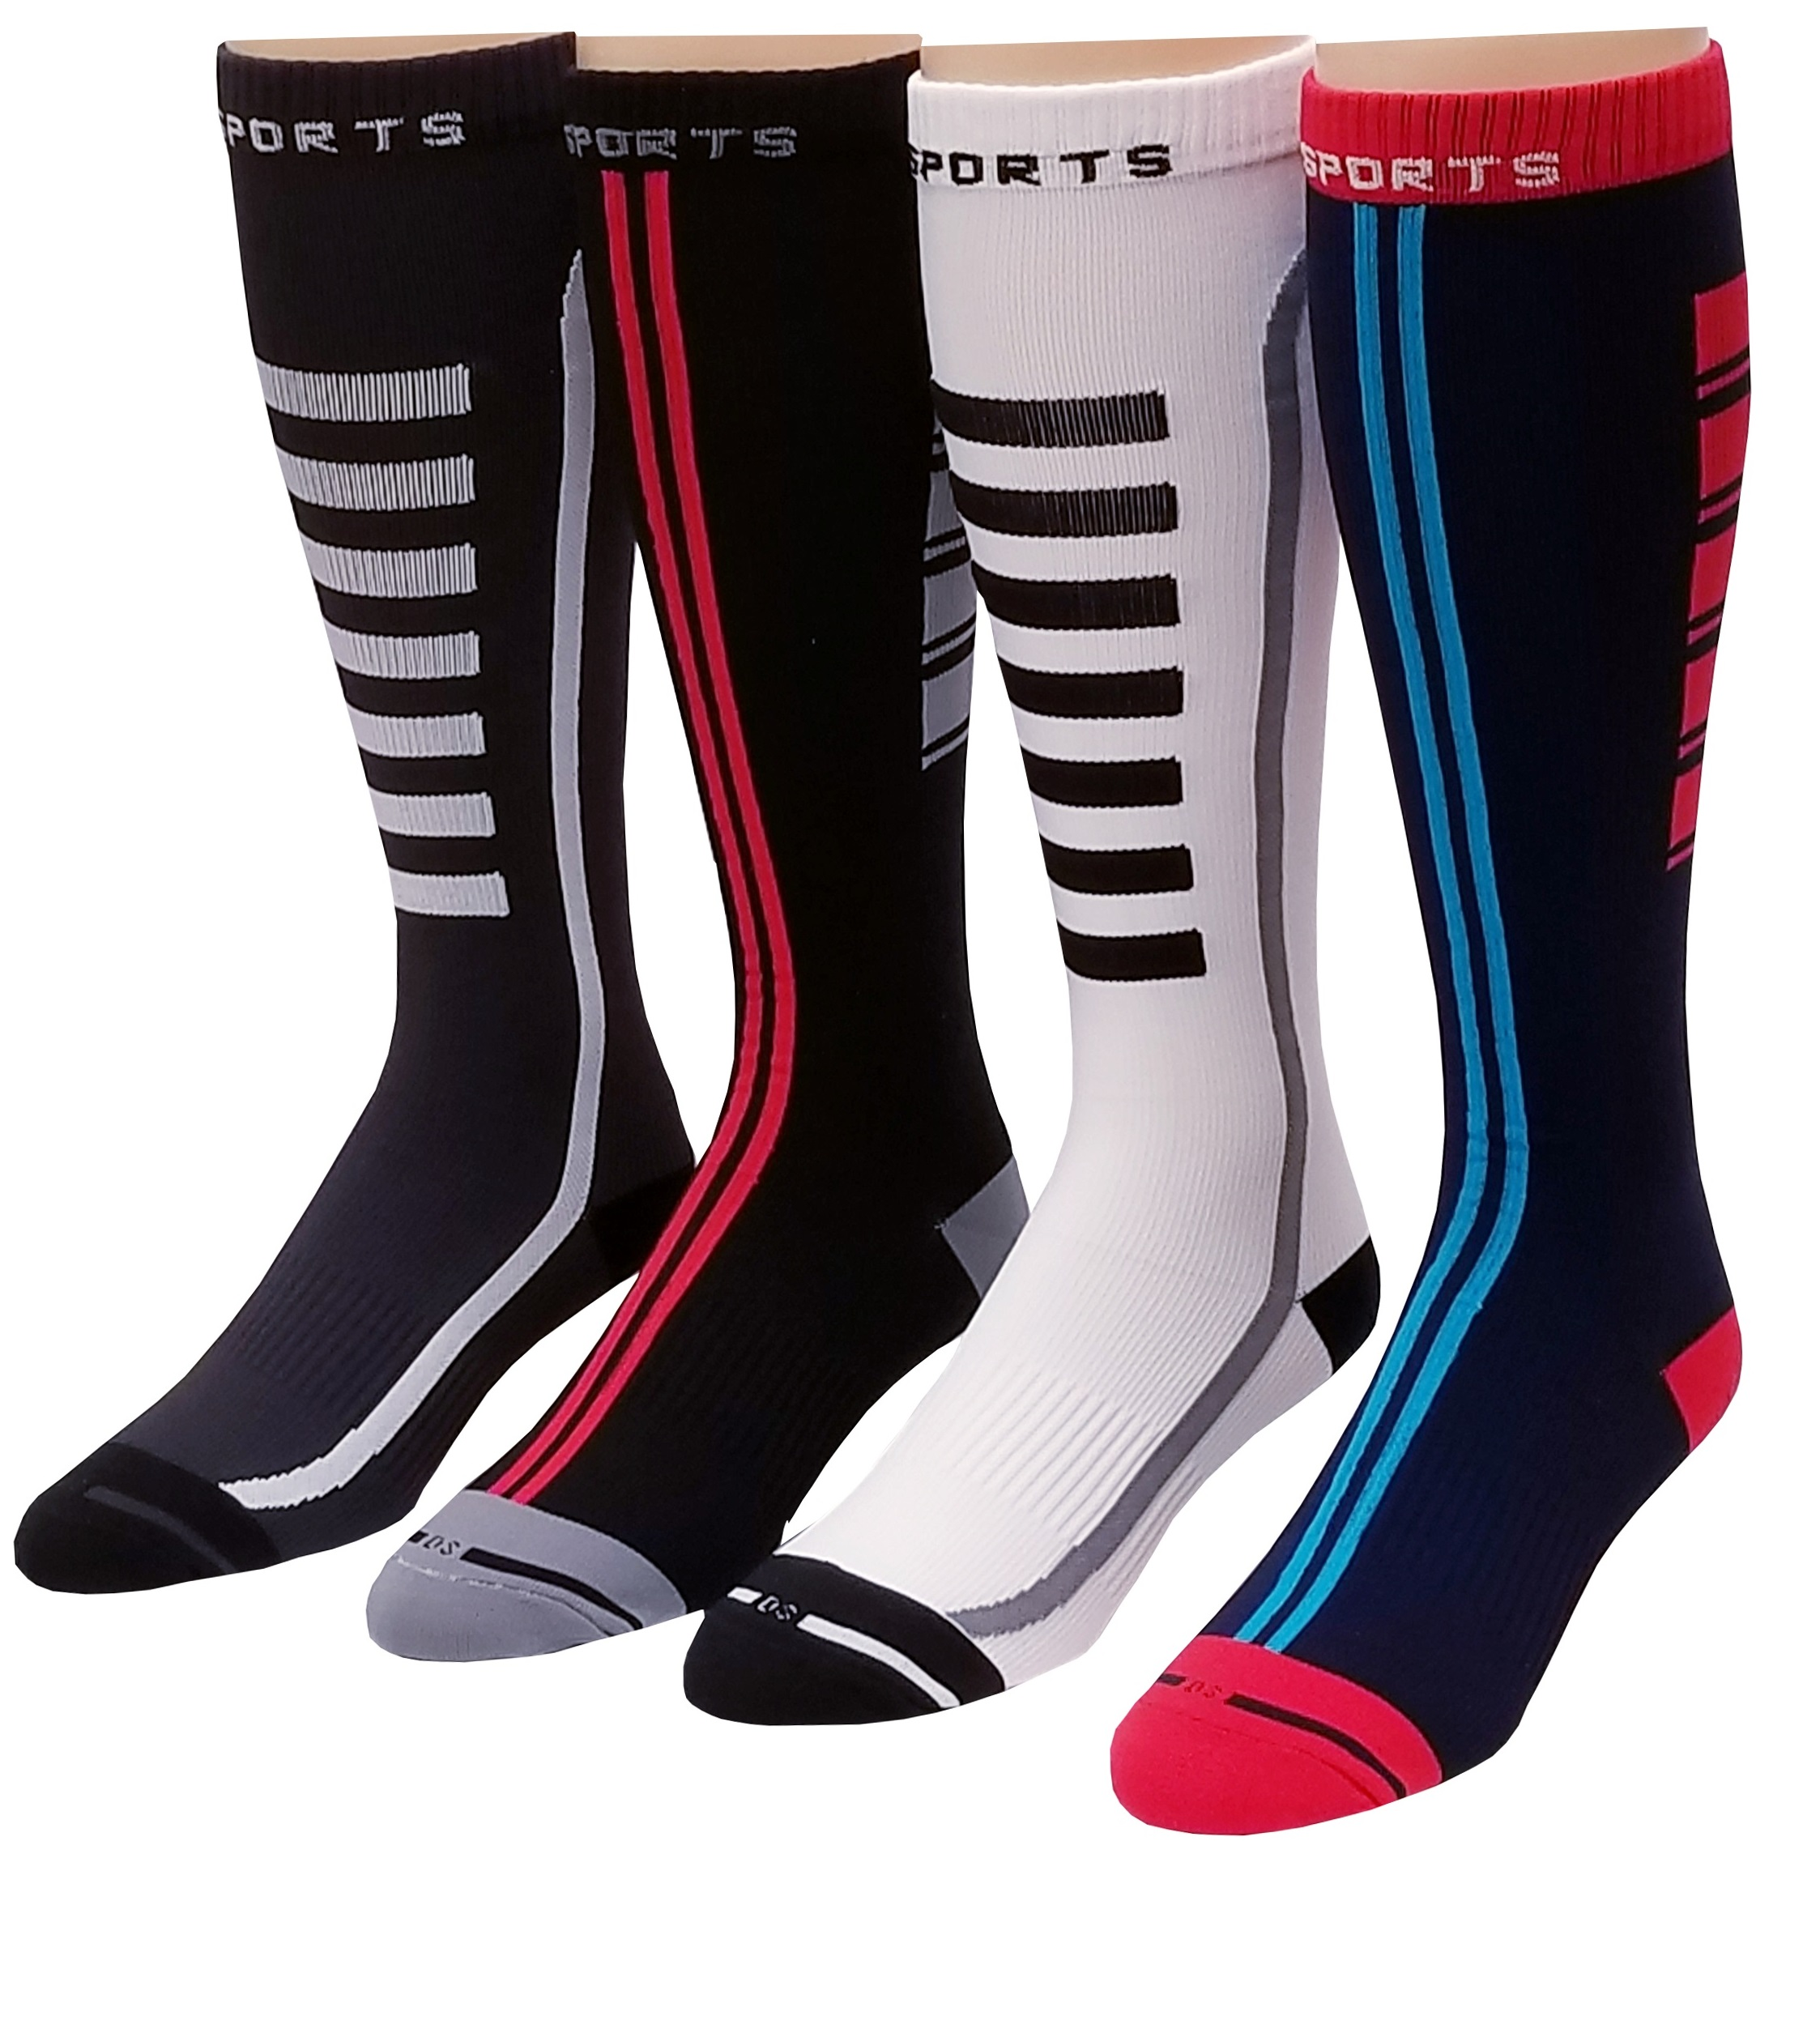 4 Pairs Pack Men, Women Sports ,Travelers , Athletes Arch Support Compression Knee High Socks 10-13 #413